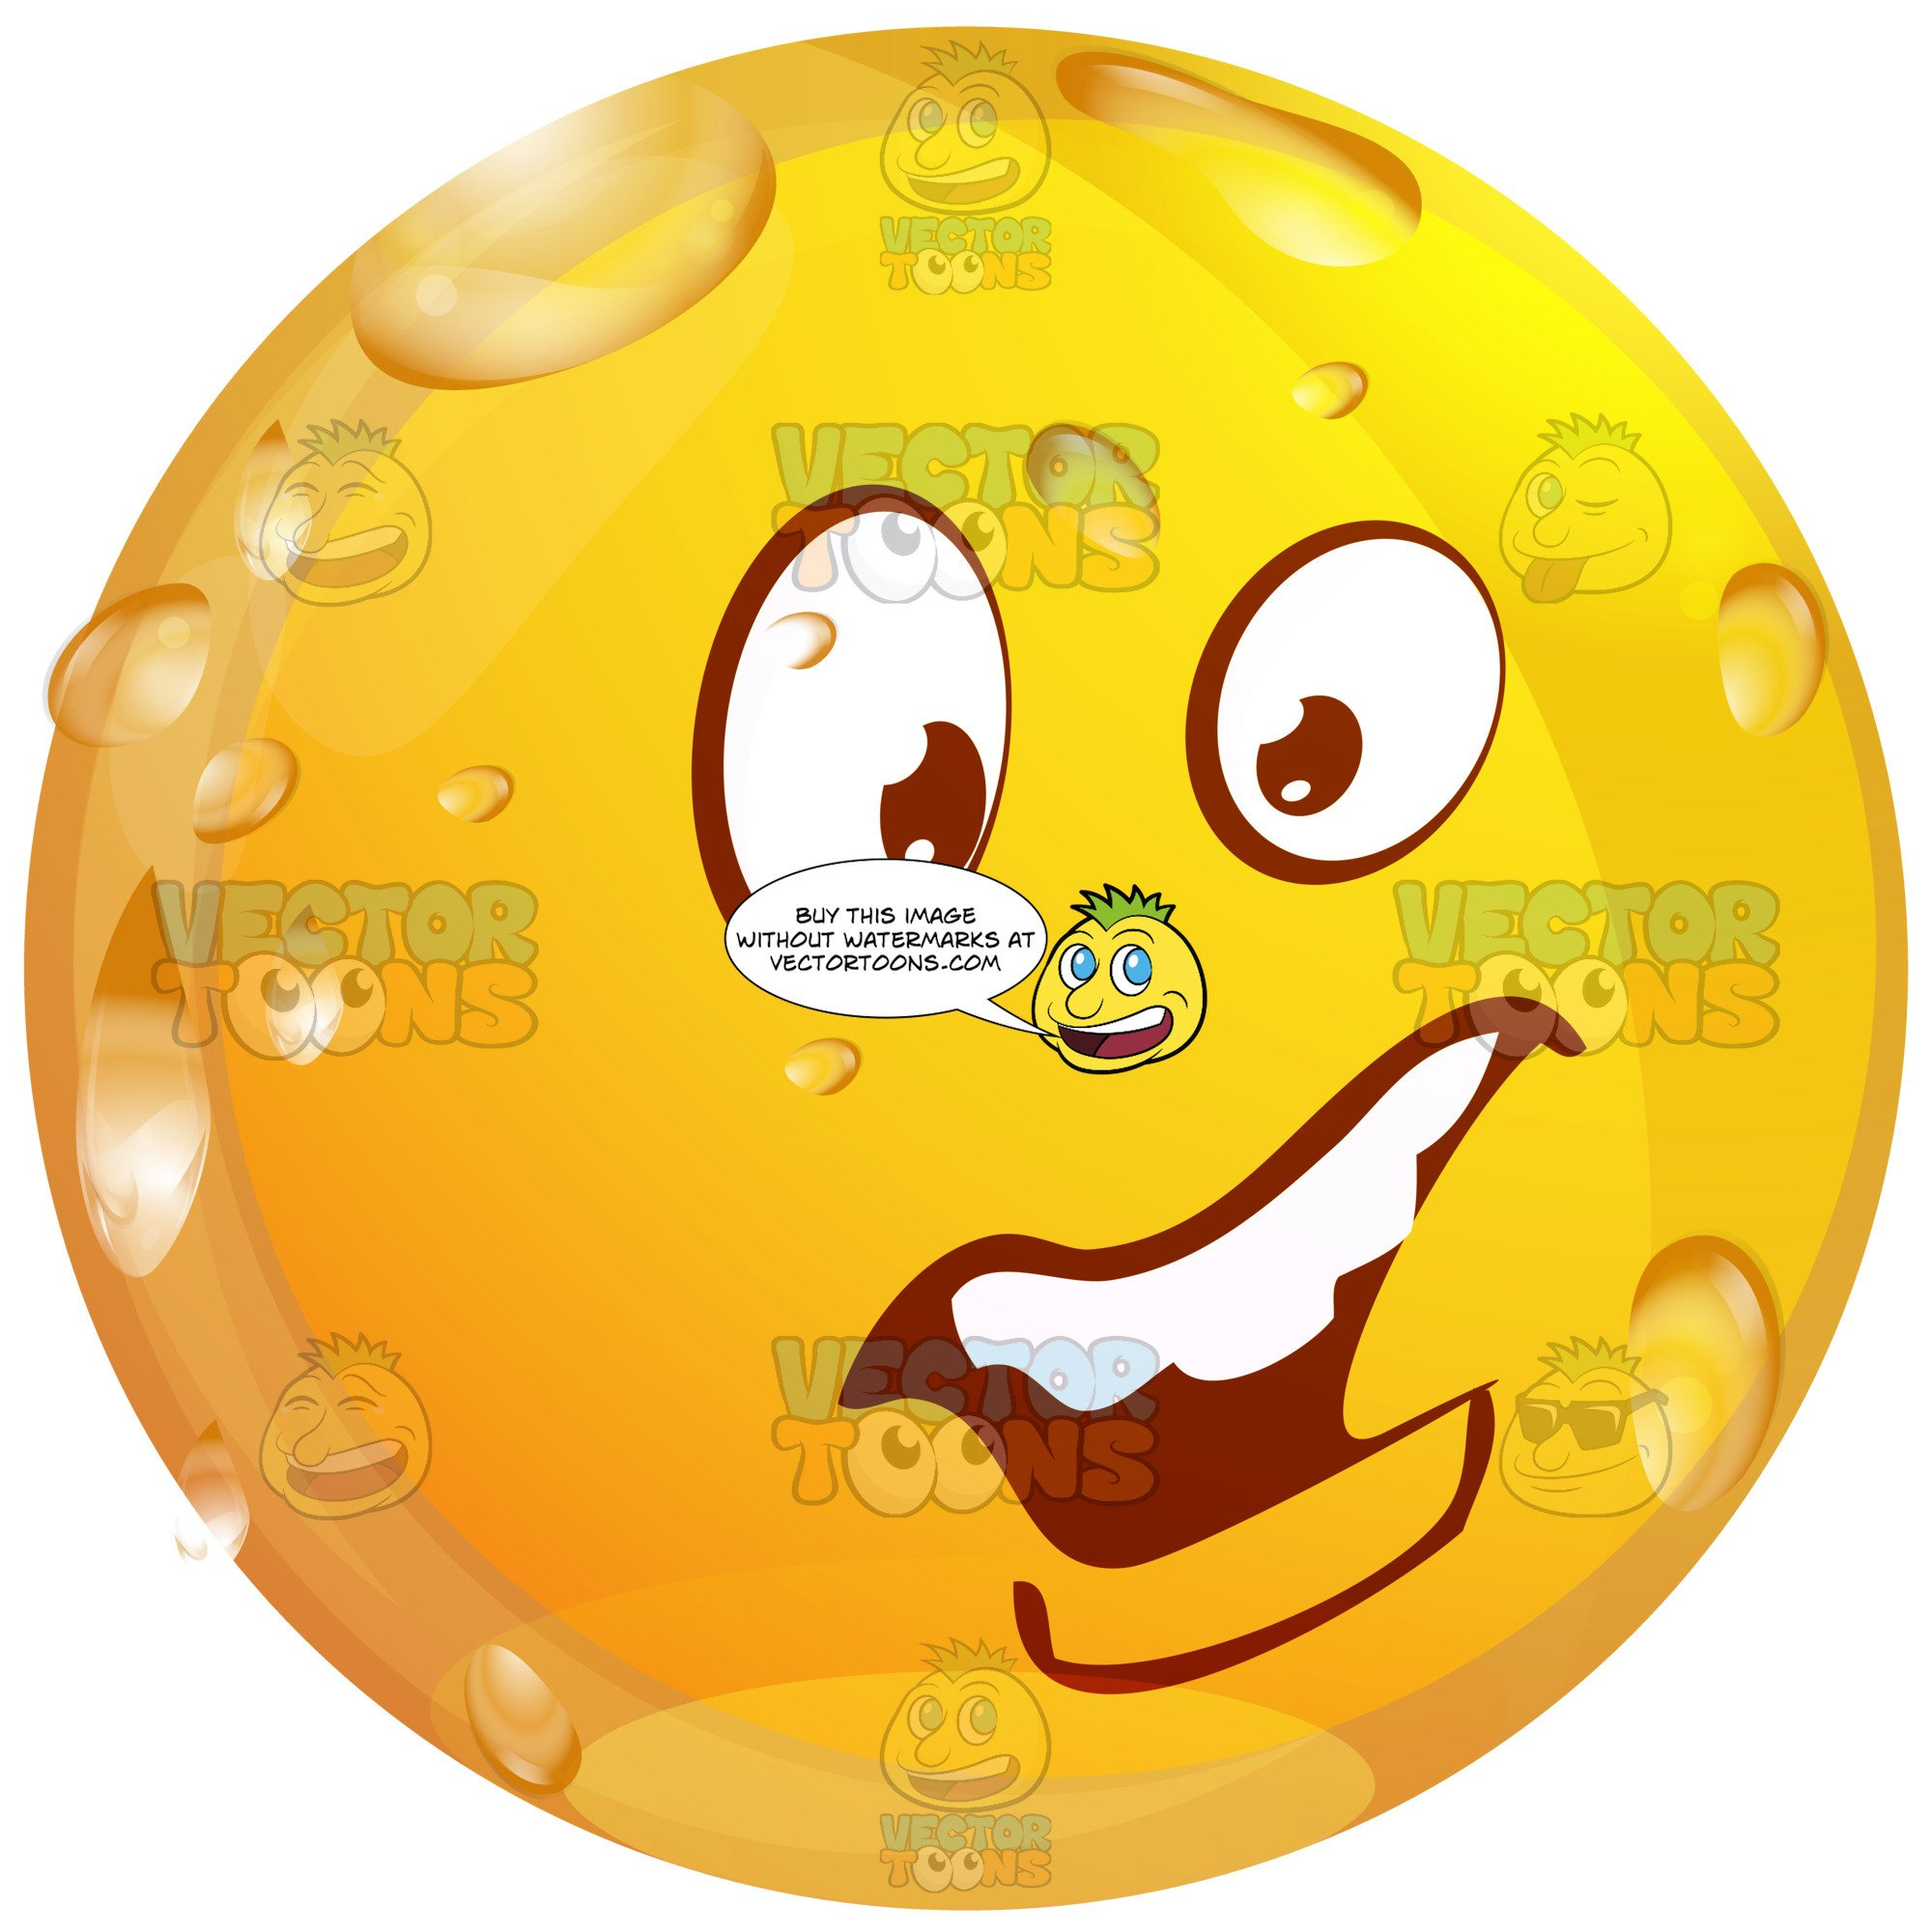 Concerend Wet Yellow Smiley Face Emoticon With Unibrow, Open Mouth,  Straight Teeth, Lower Lip.